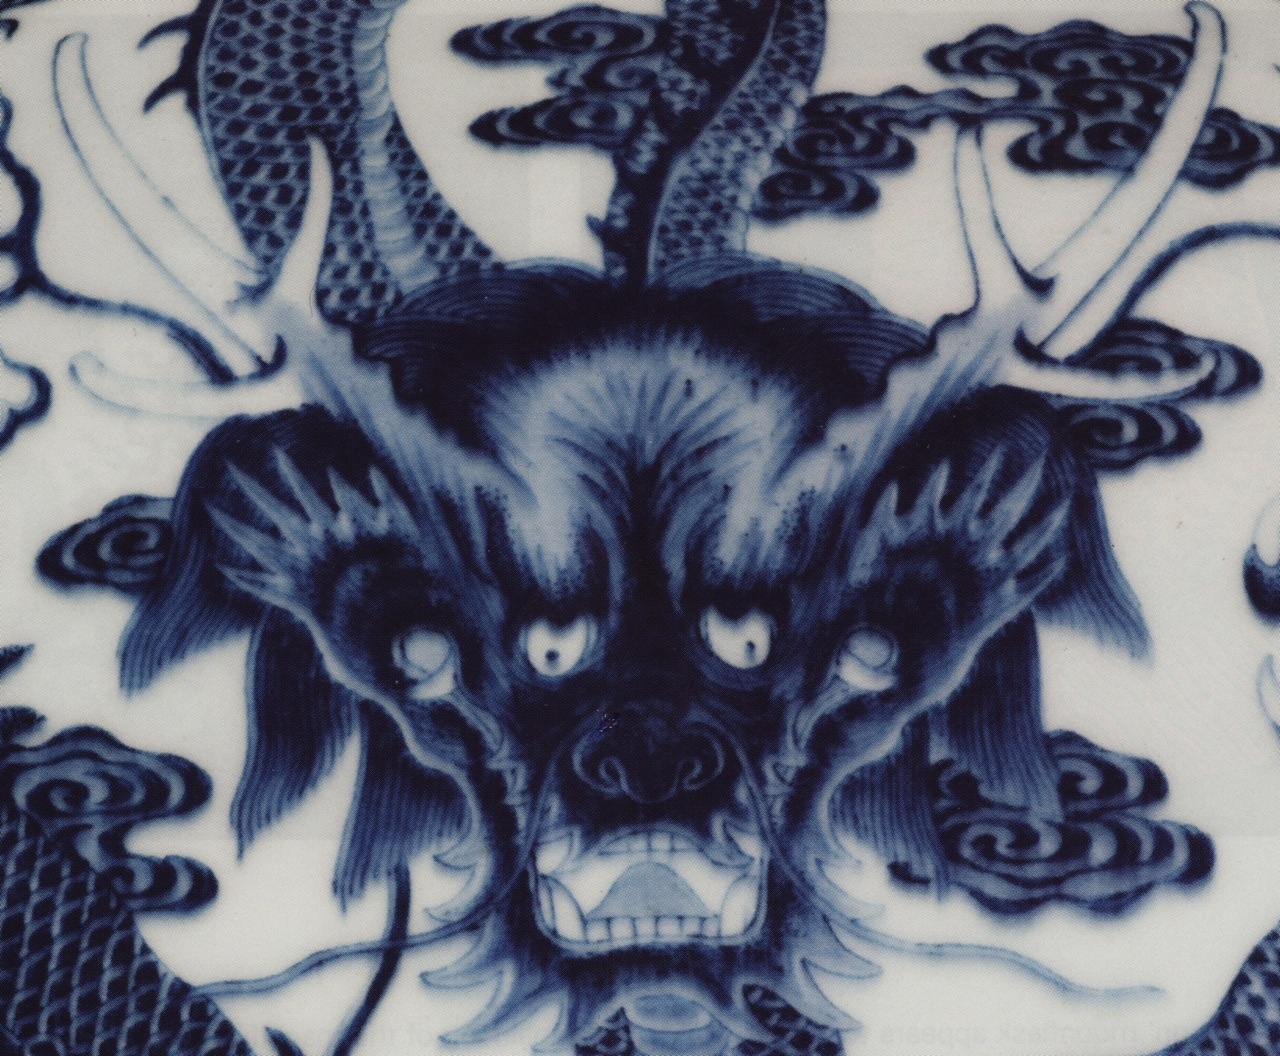 Eugene hn ceramic artist the meaning and significance of the nine resemblances of the dragon according to wang fu as captured on a rare blue and white dragon moonflask as cited in a sothebys catalogue 7 nov 2007 biocorpaavc Images